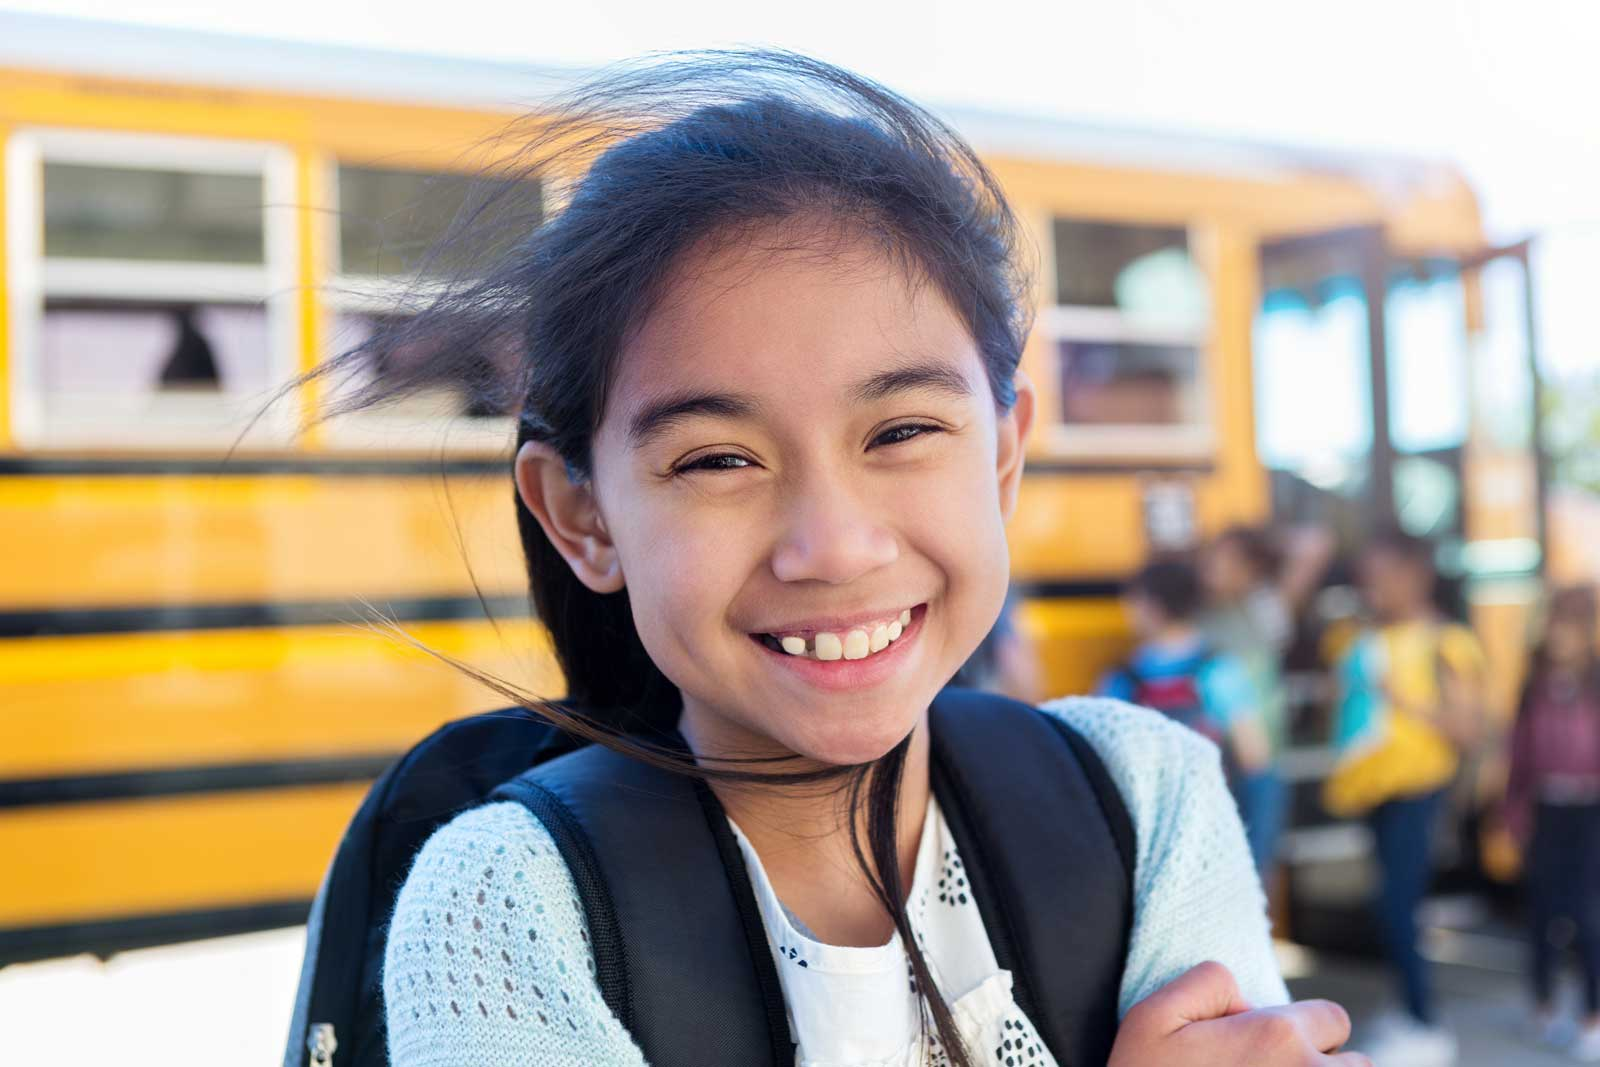 A happy elementary-aged school girl is getting on a school bus for the first day of school.